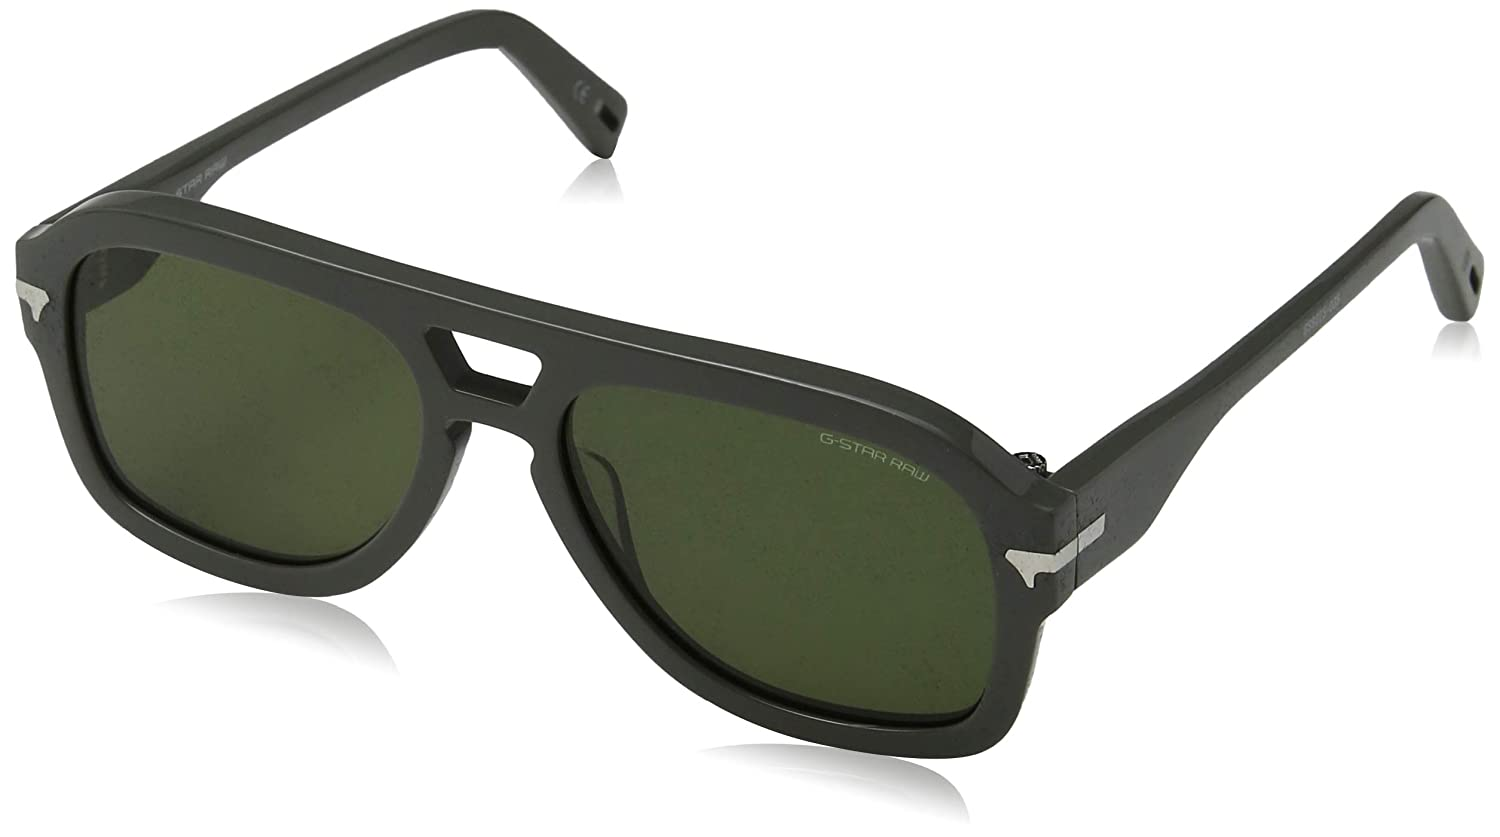 G-STAR RAW GS601S Fat Tacoma 035 55 Gafas de Sol, Grey ...